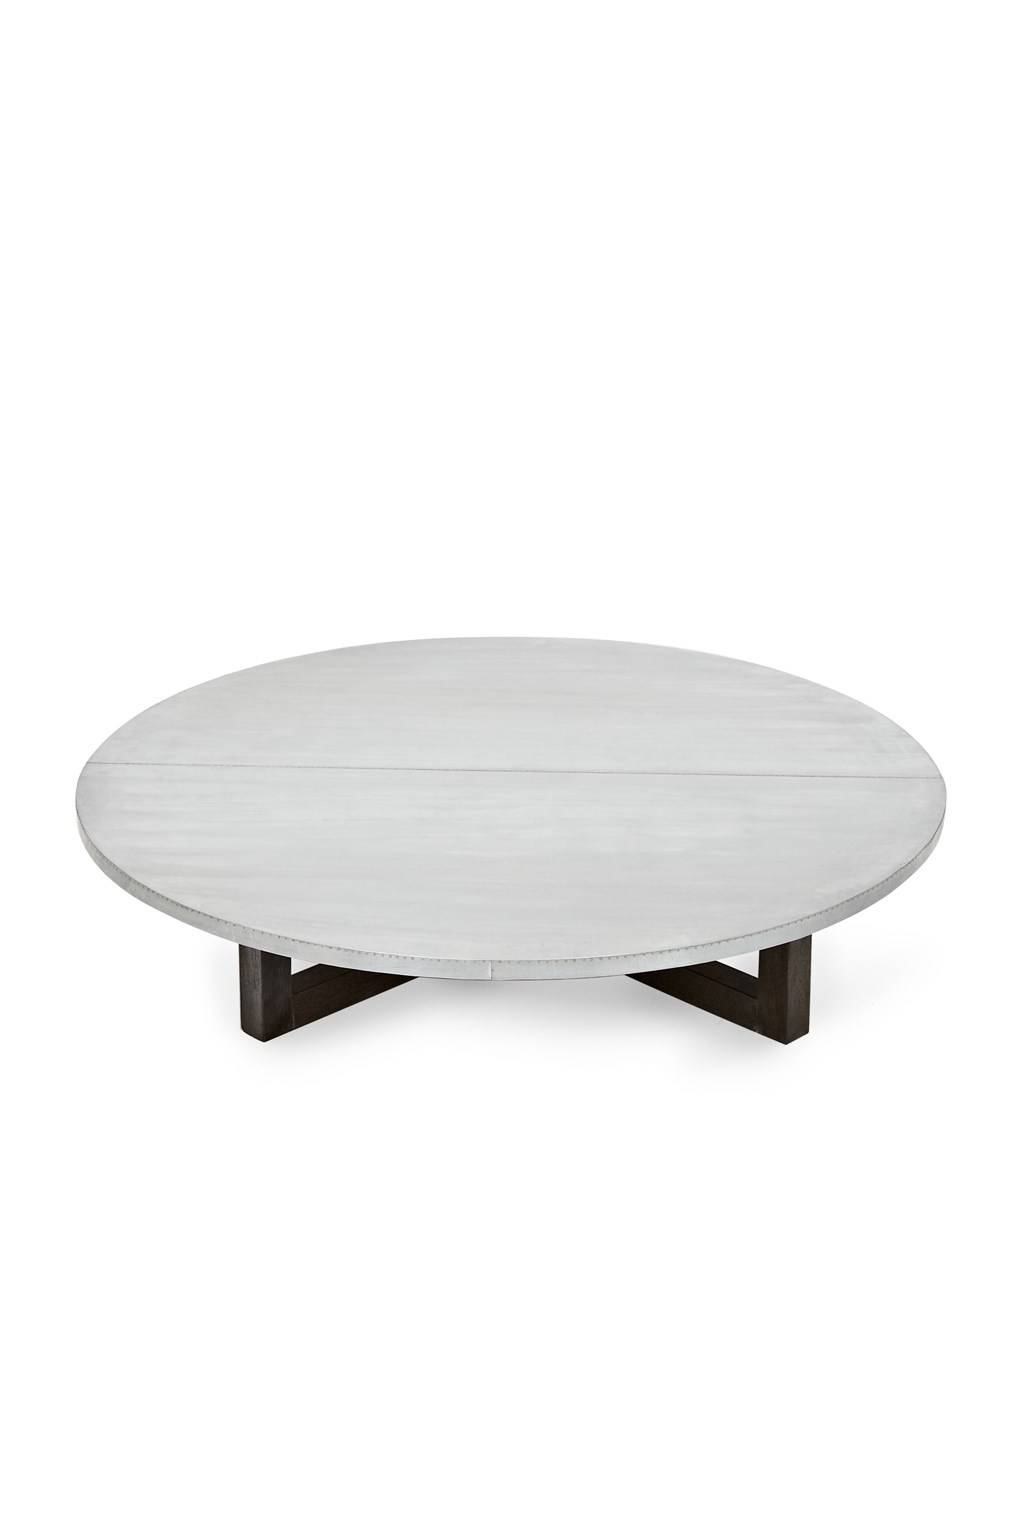 Coffee Table: Excellent Low Round Coffee Table Ideas Round Coffee in White Circle Coffee Tables (Image 12 of 30)